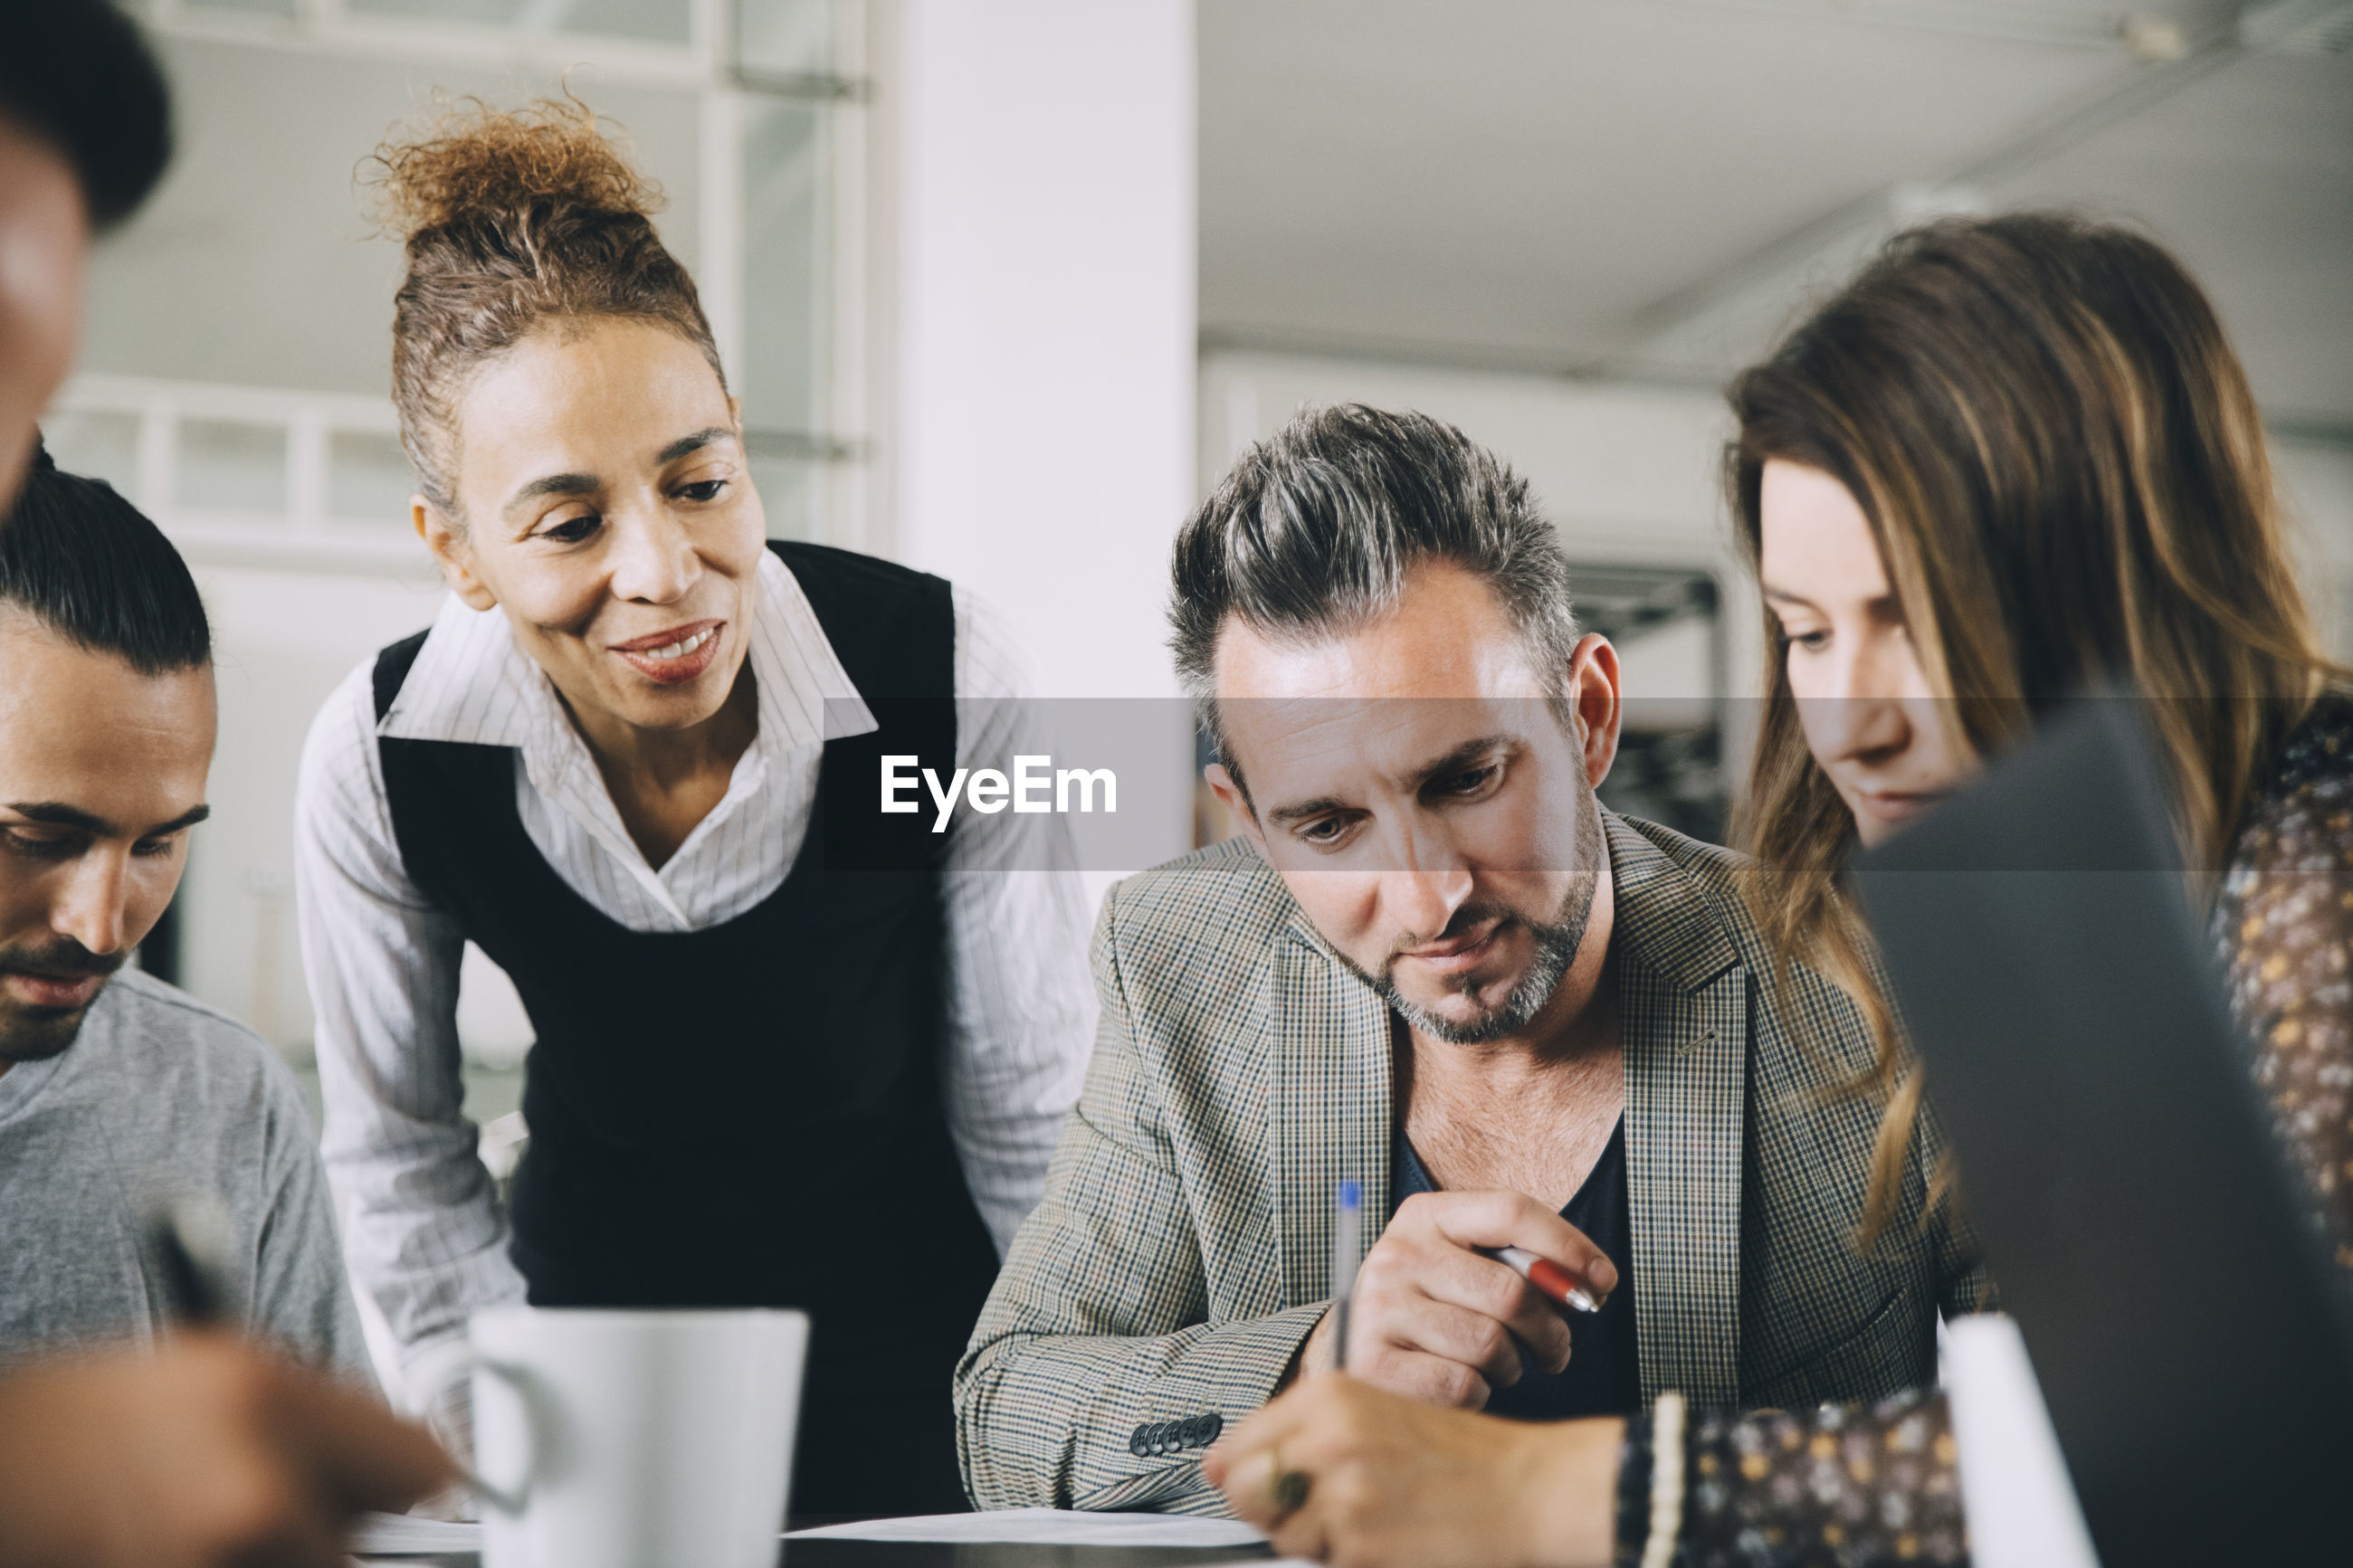 GROUP OF PEOPLE WORKING ON TABLE IN OFFICE